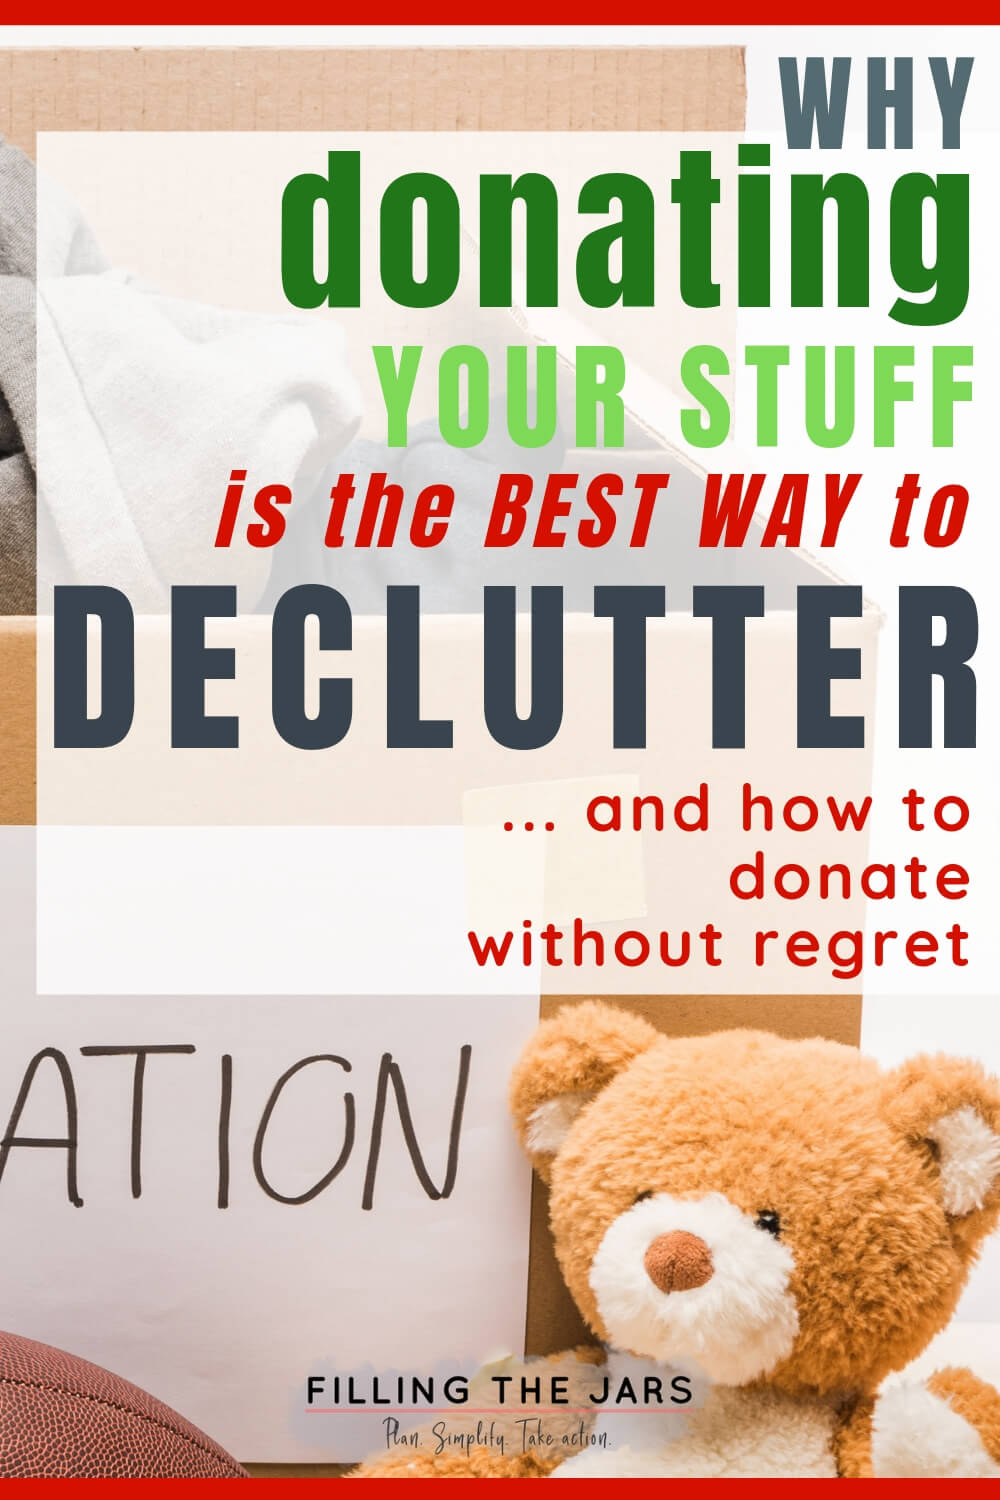 donation box and teddy bear with text overlay why donating is the best way to declutter